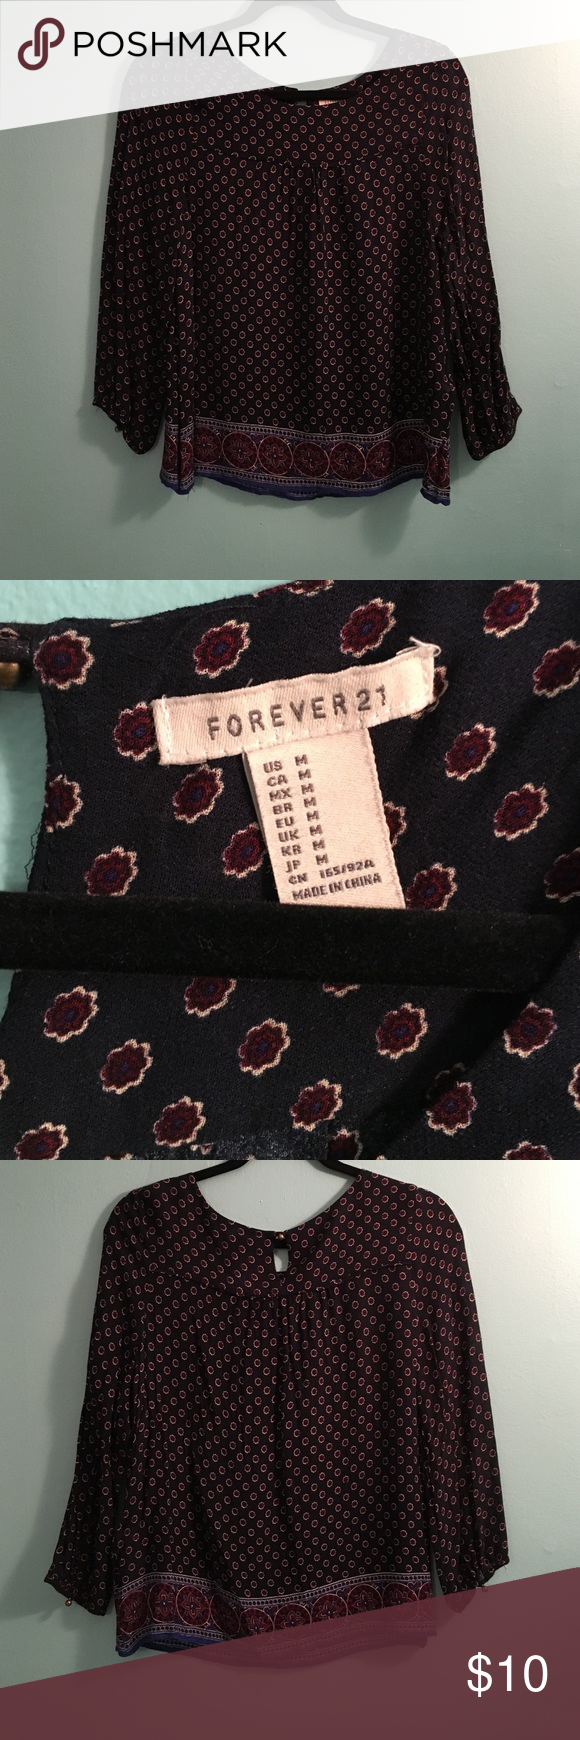 Forever21 navy top! Rarely worn top! From forever21. Navy with red and white pattern design! Forever 21 Tops Blouses